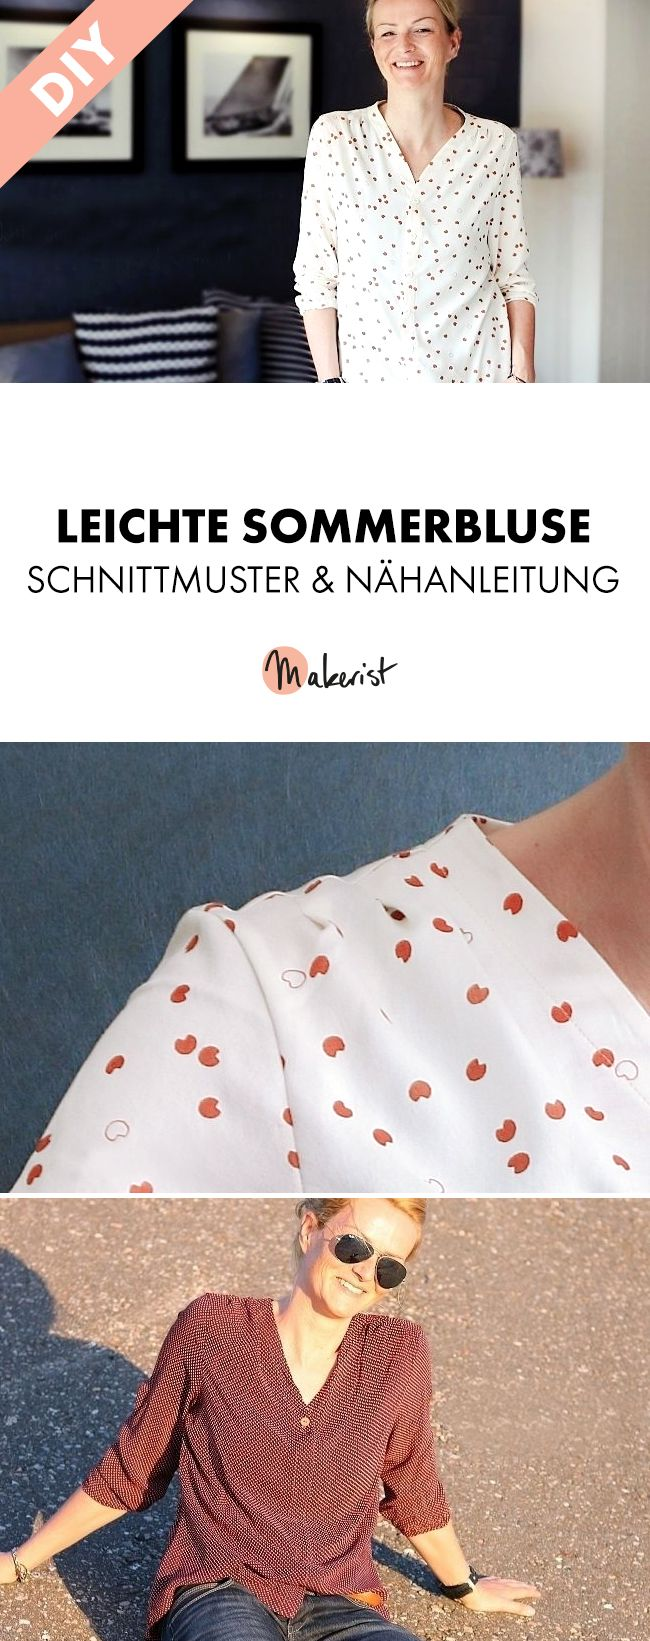 65 best Damen - Schnittmuster - Nähen images on Pinterest ...